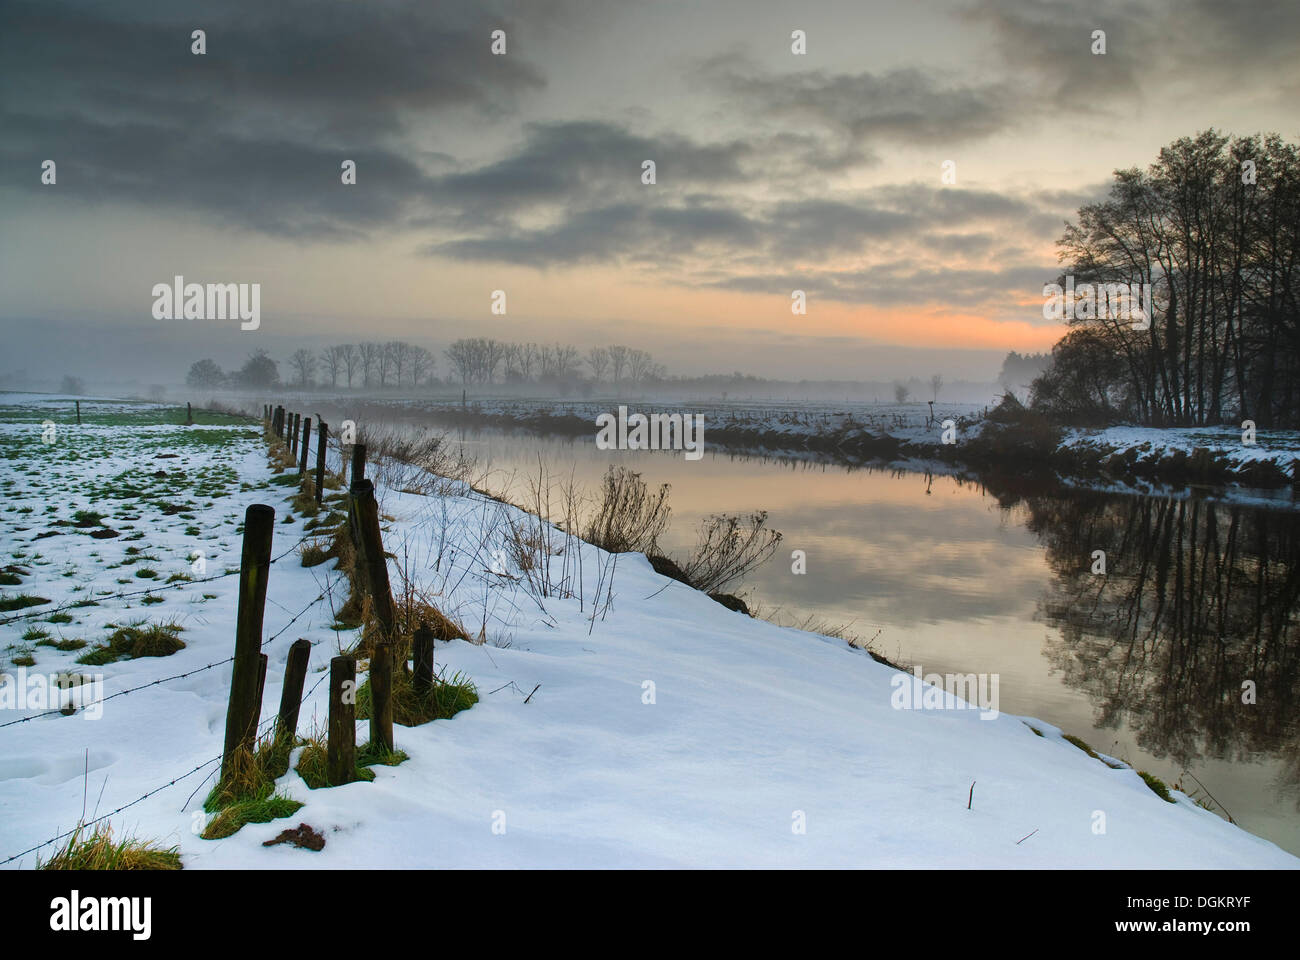 Morning mood in winter on the banks of the Vecht River, Ommen, Holland, Netherlands, Europe - Stock Image